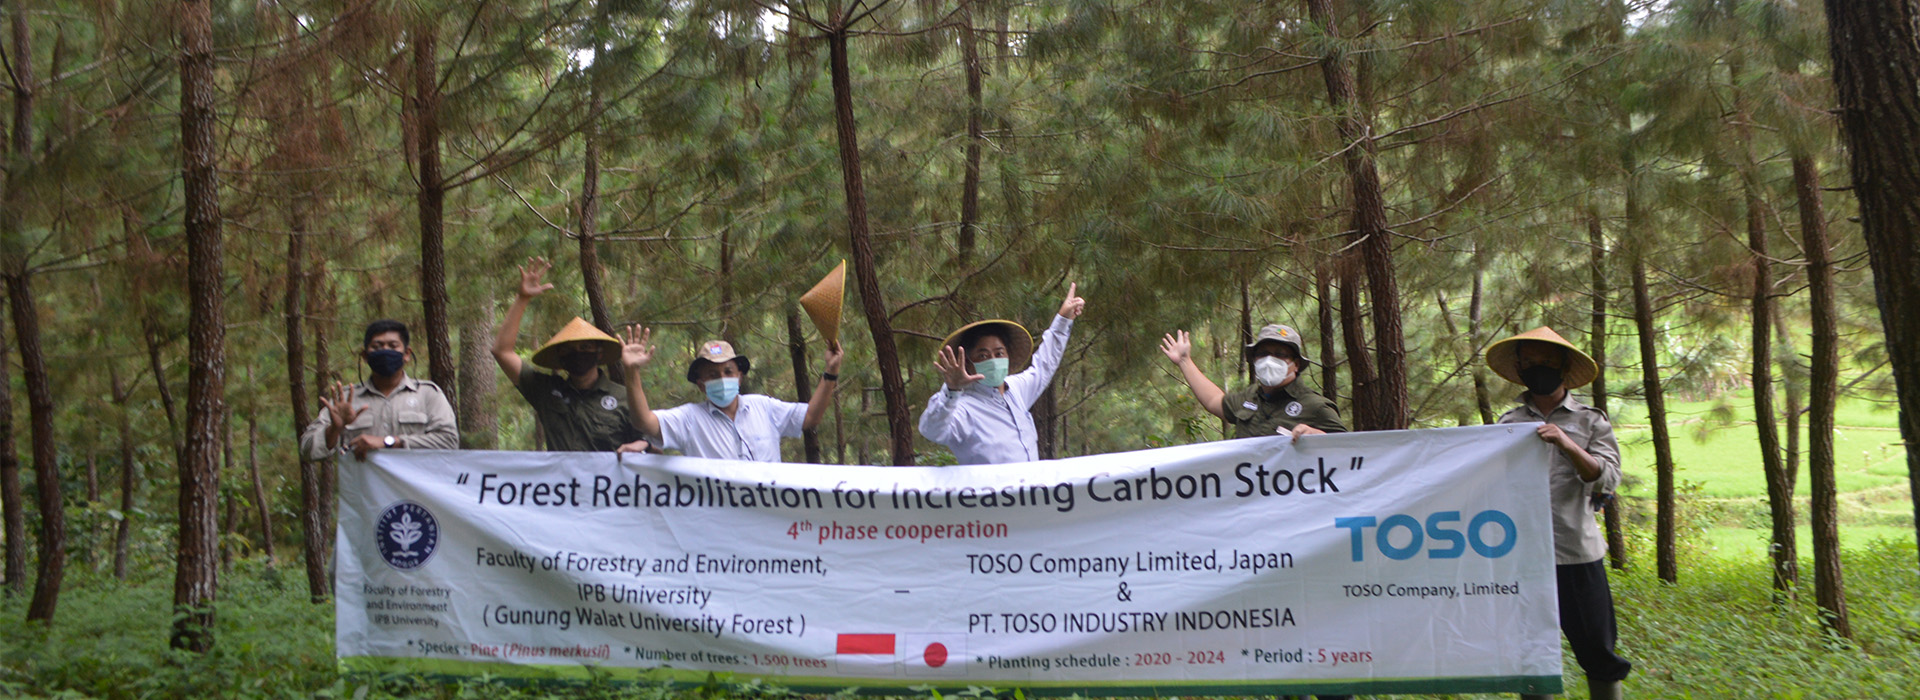 voluntary carbon trading toso company japan dan toso industry indonesia